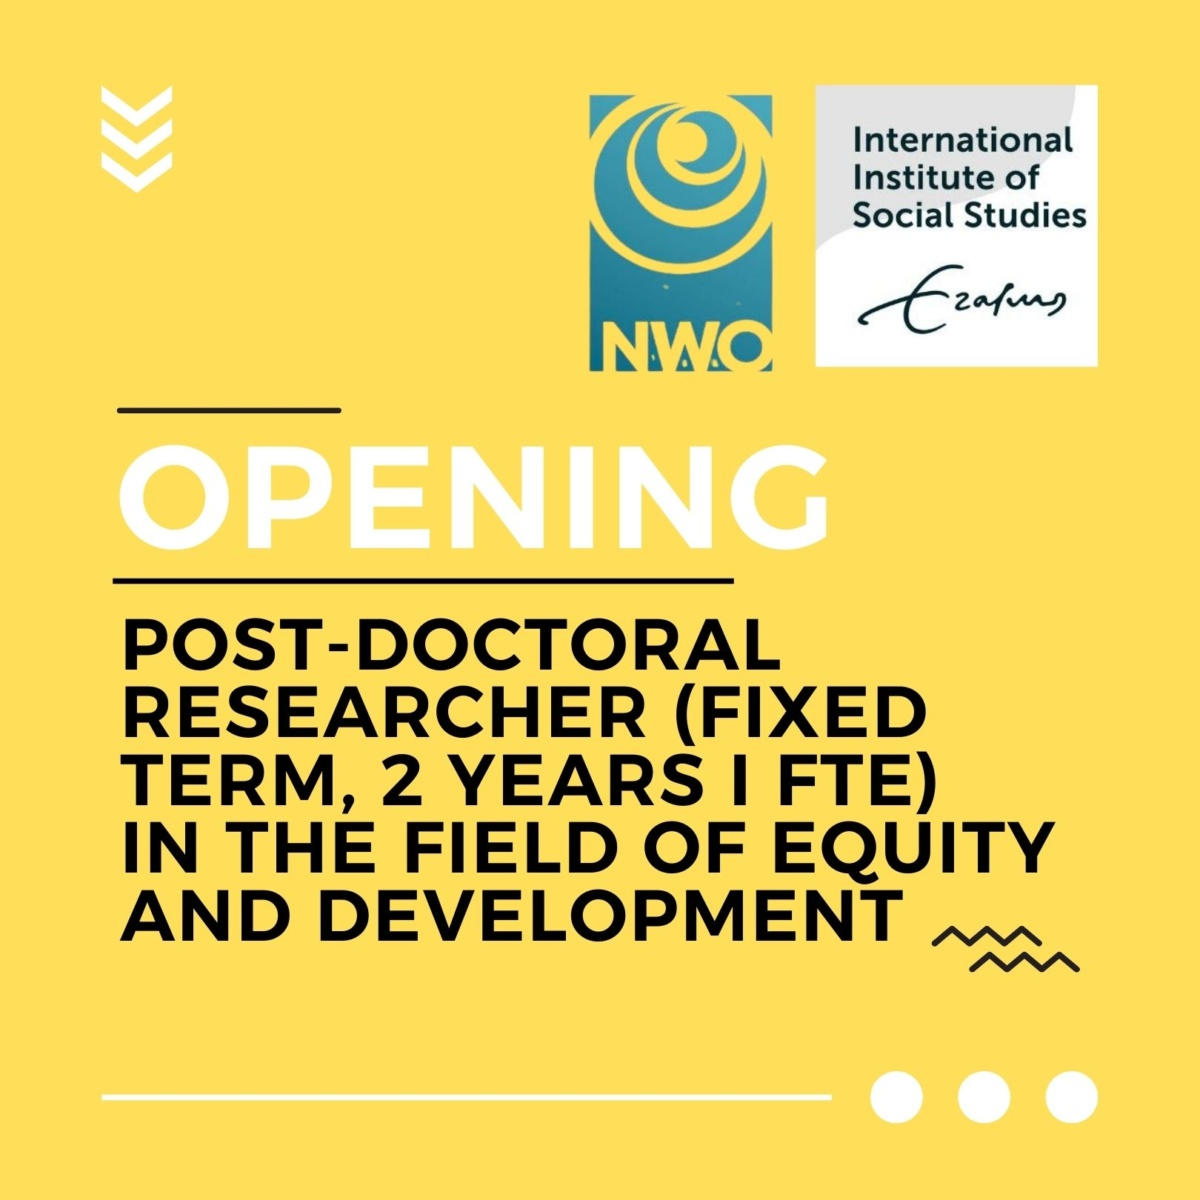 Opening: Post-doctoral researcher in the field of Equity and Development